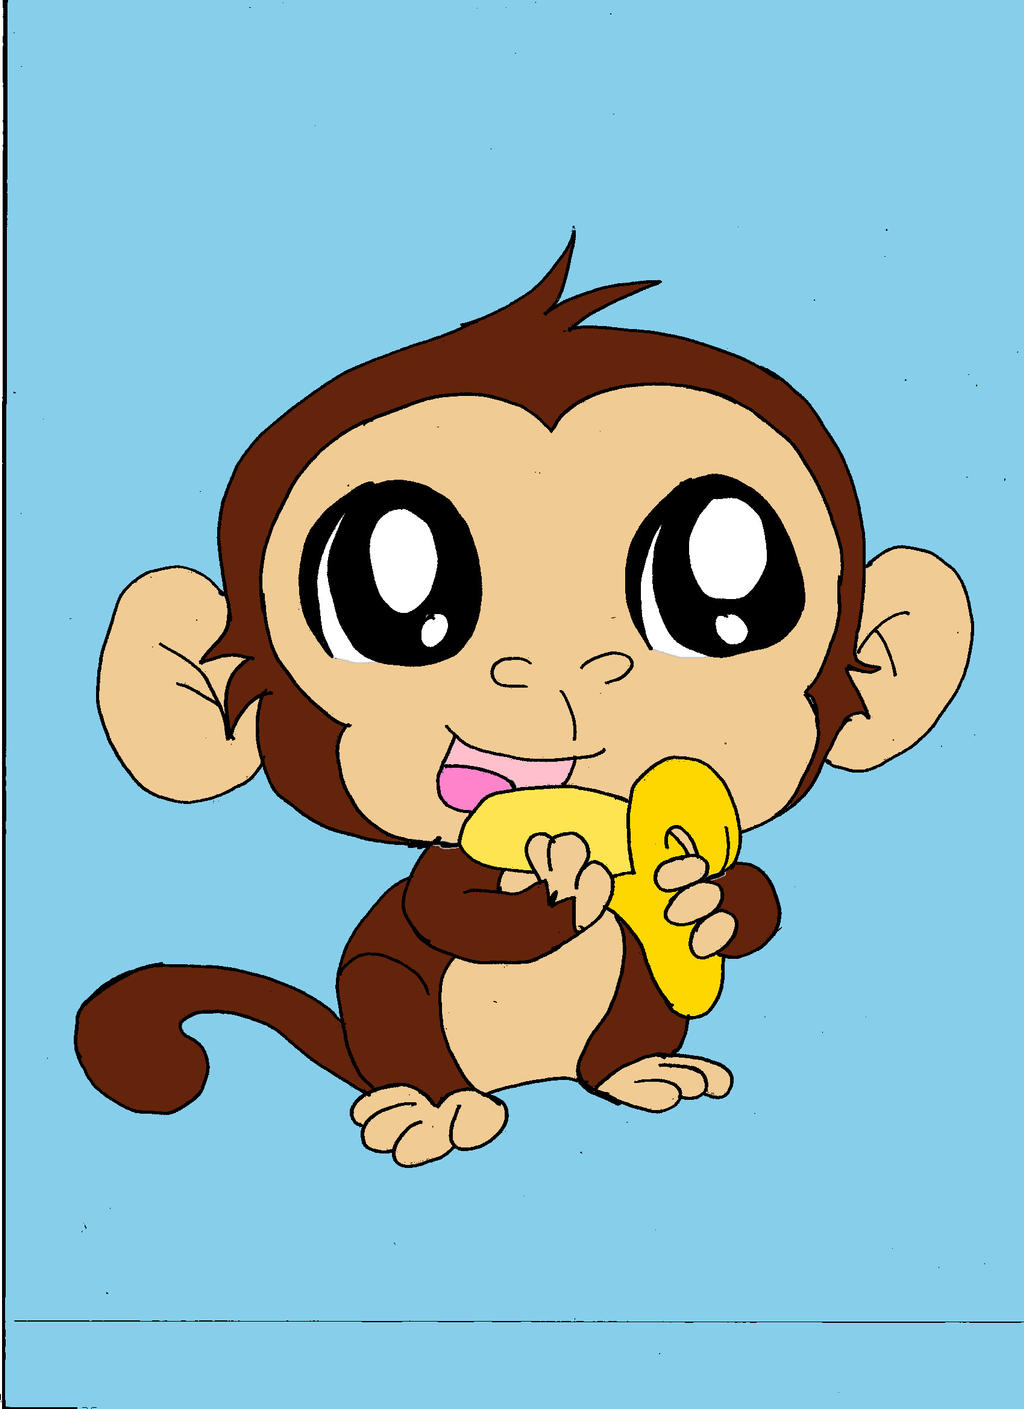 Cute Easy Monkey Drawings | www.imgkid.com - The Image Kid ...